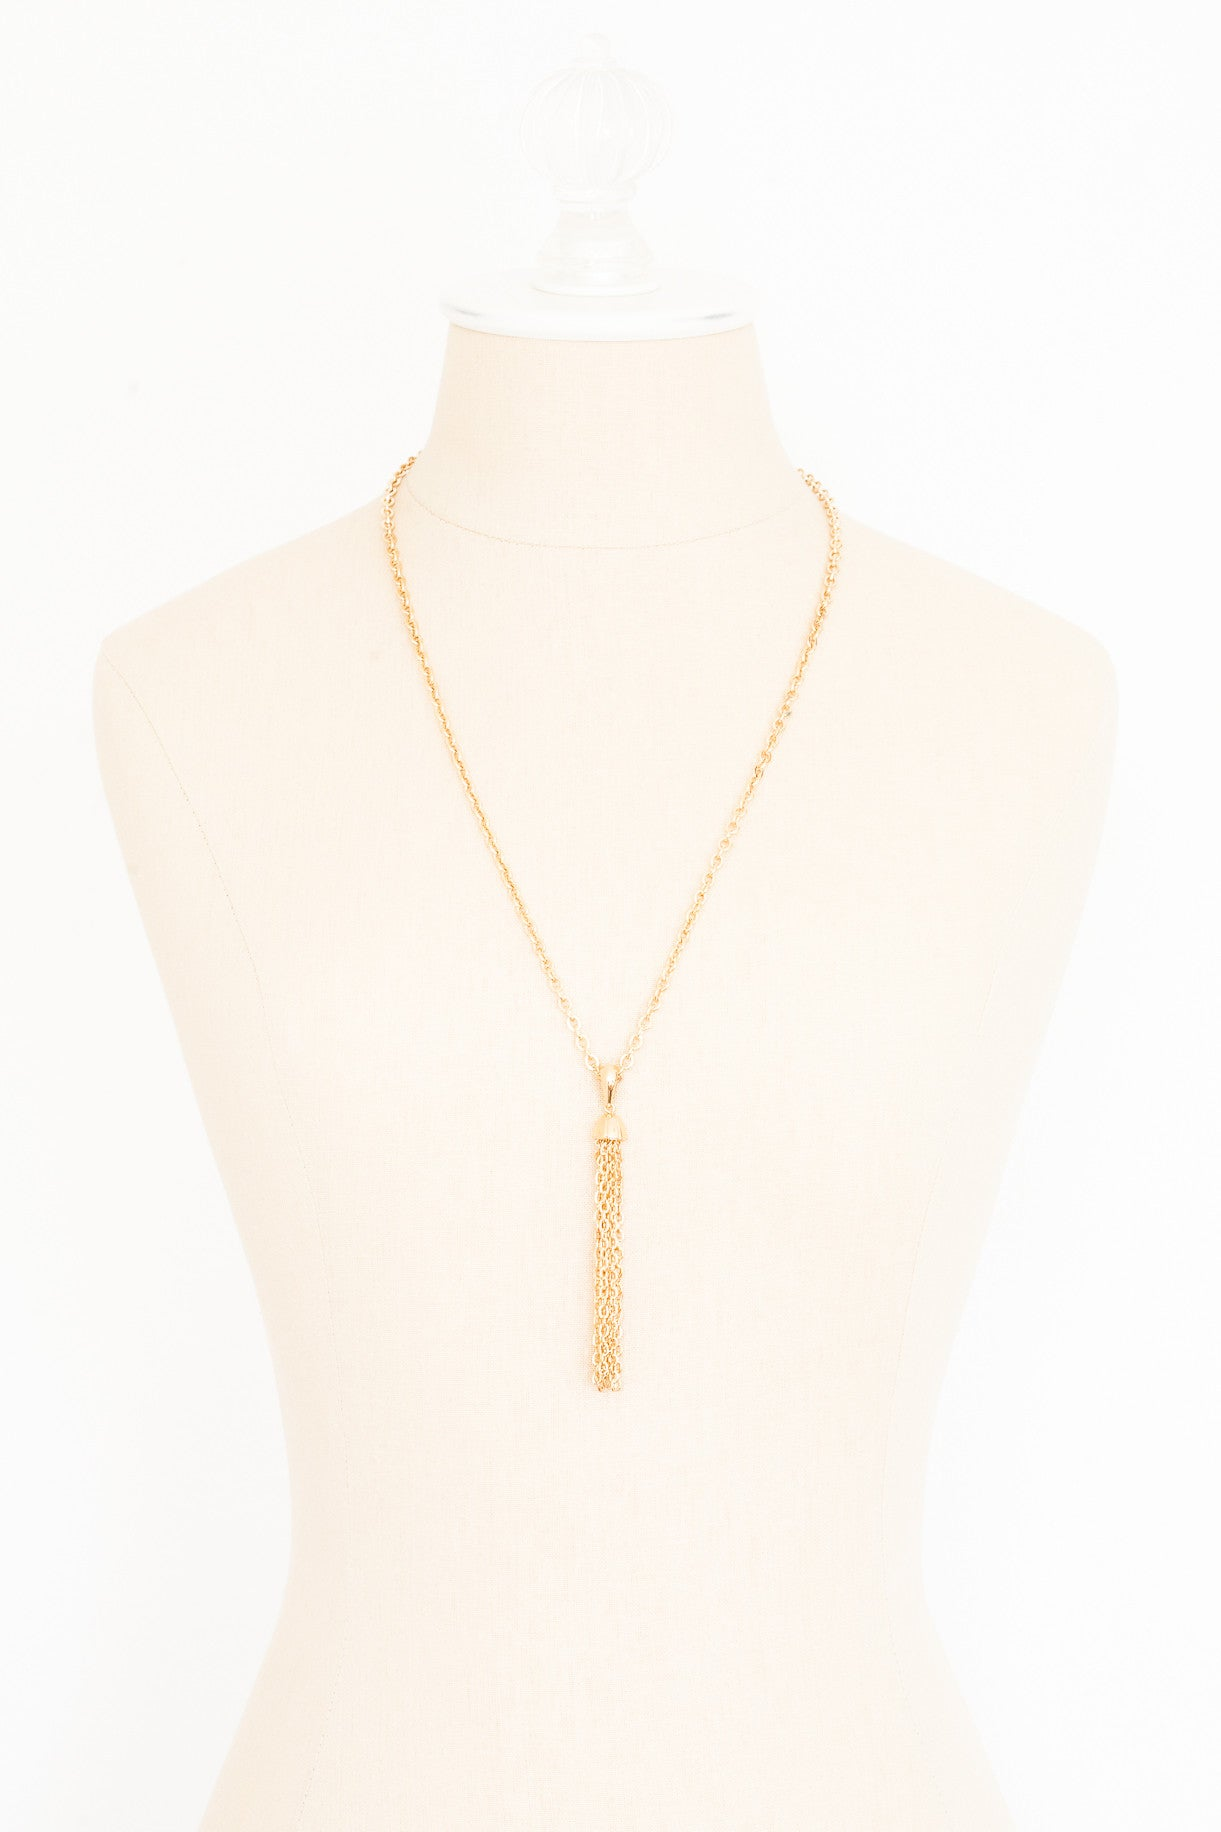 70's__Sarah Coventry__Dainty Tassel Necklace